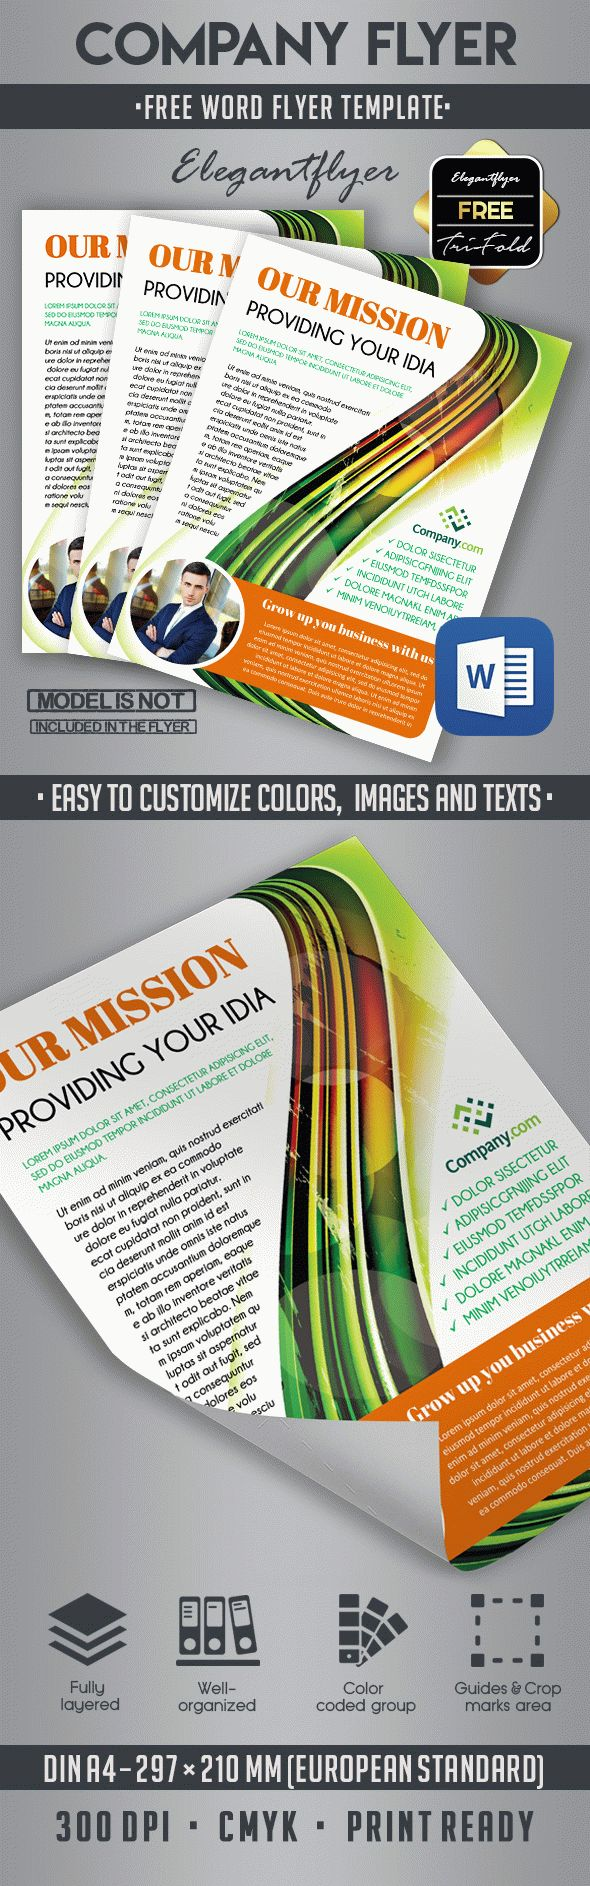 10 best business flyer templates in word by elegantflyer 10 best business flyer templates in word cheaphphosting Image collections